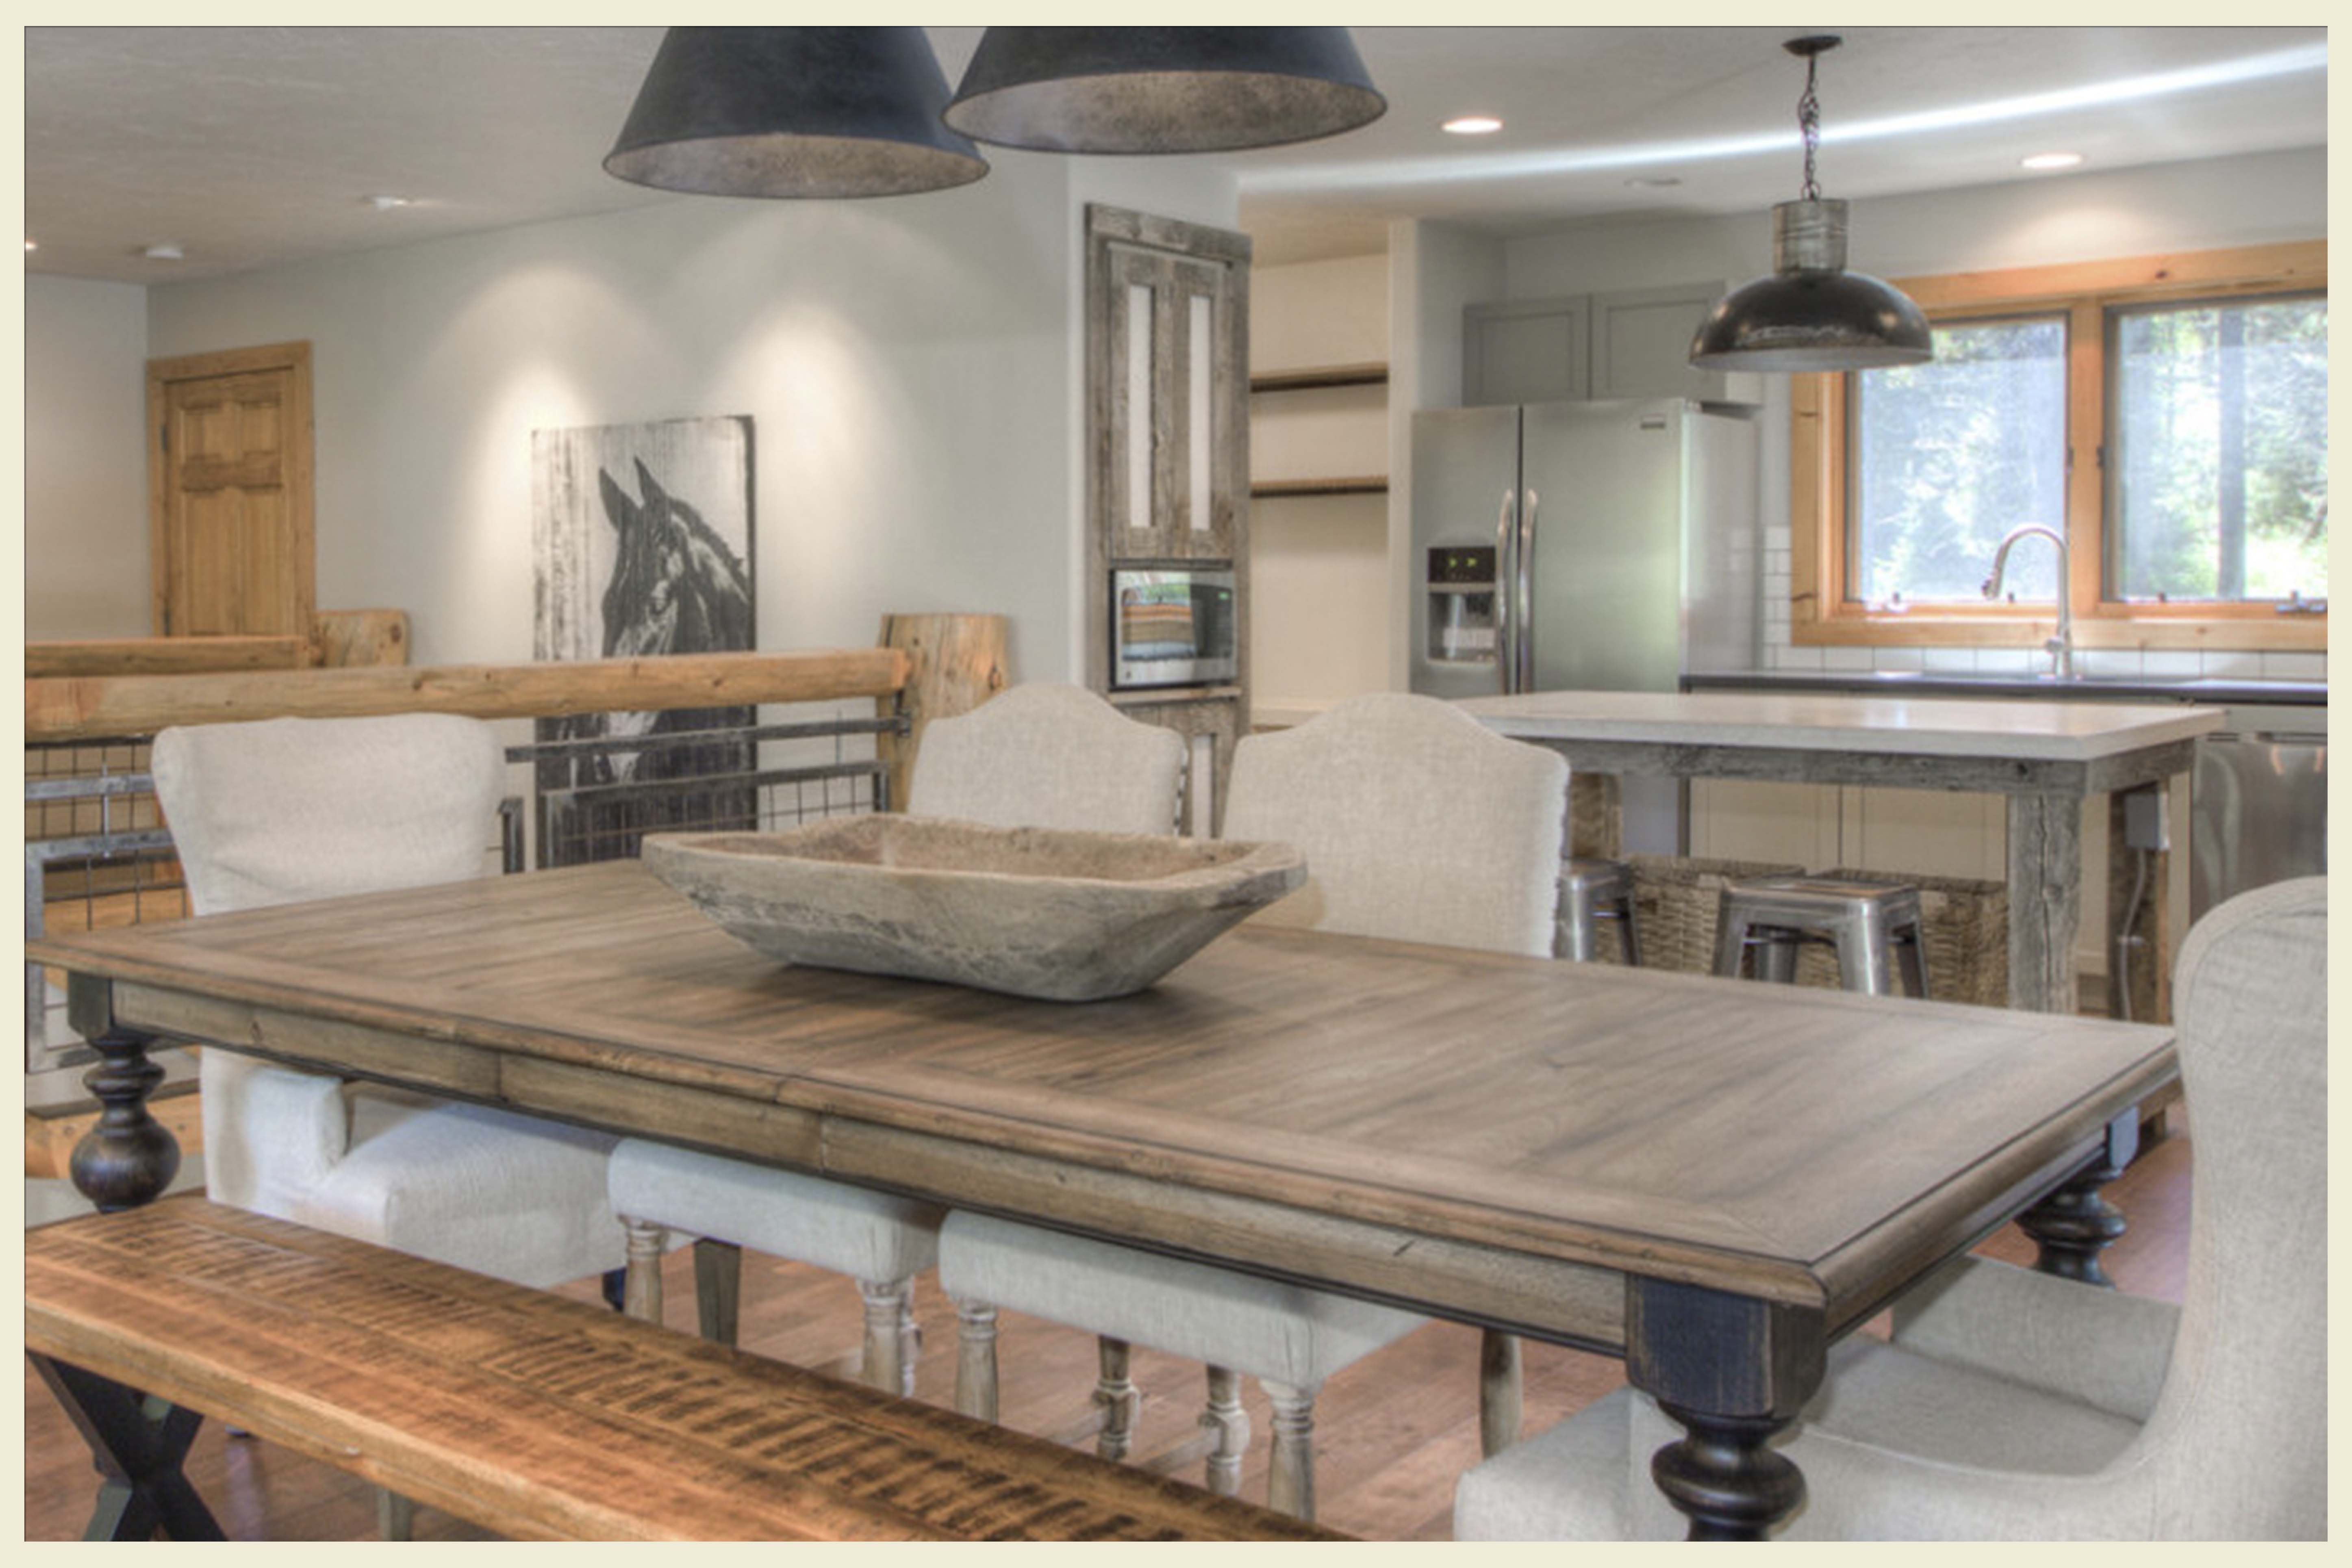 Montana Style: Decorating Your New Home in the Gallatin Valley